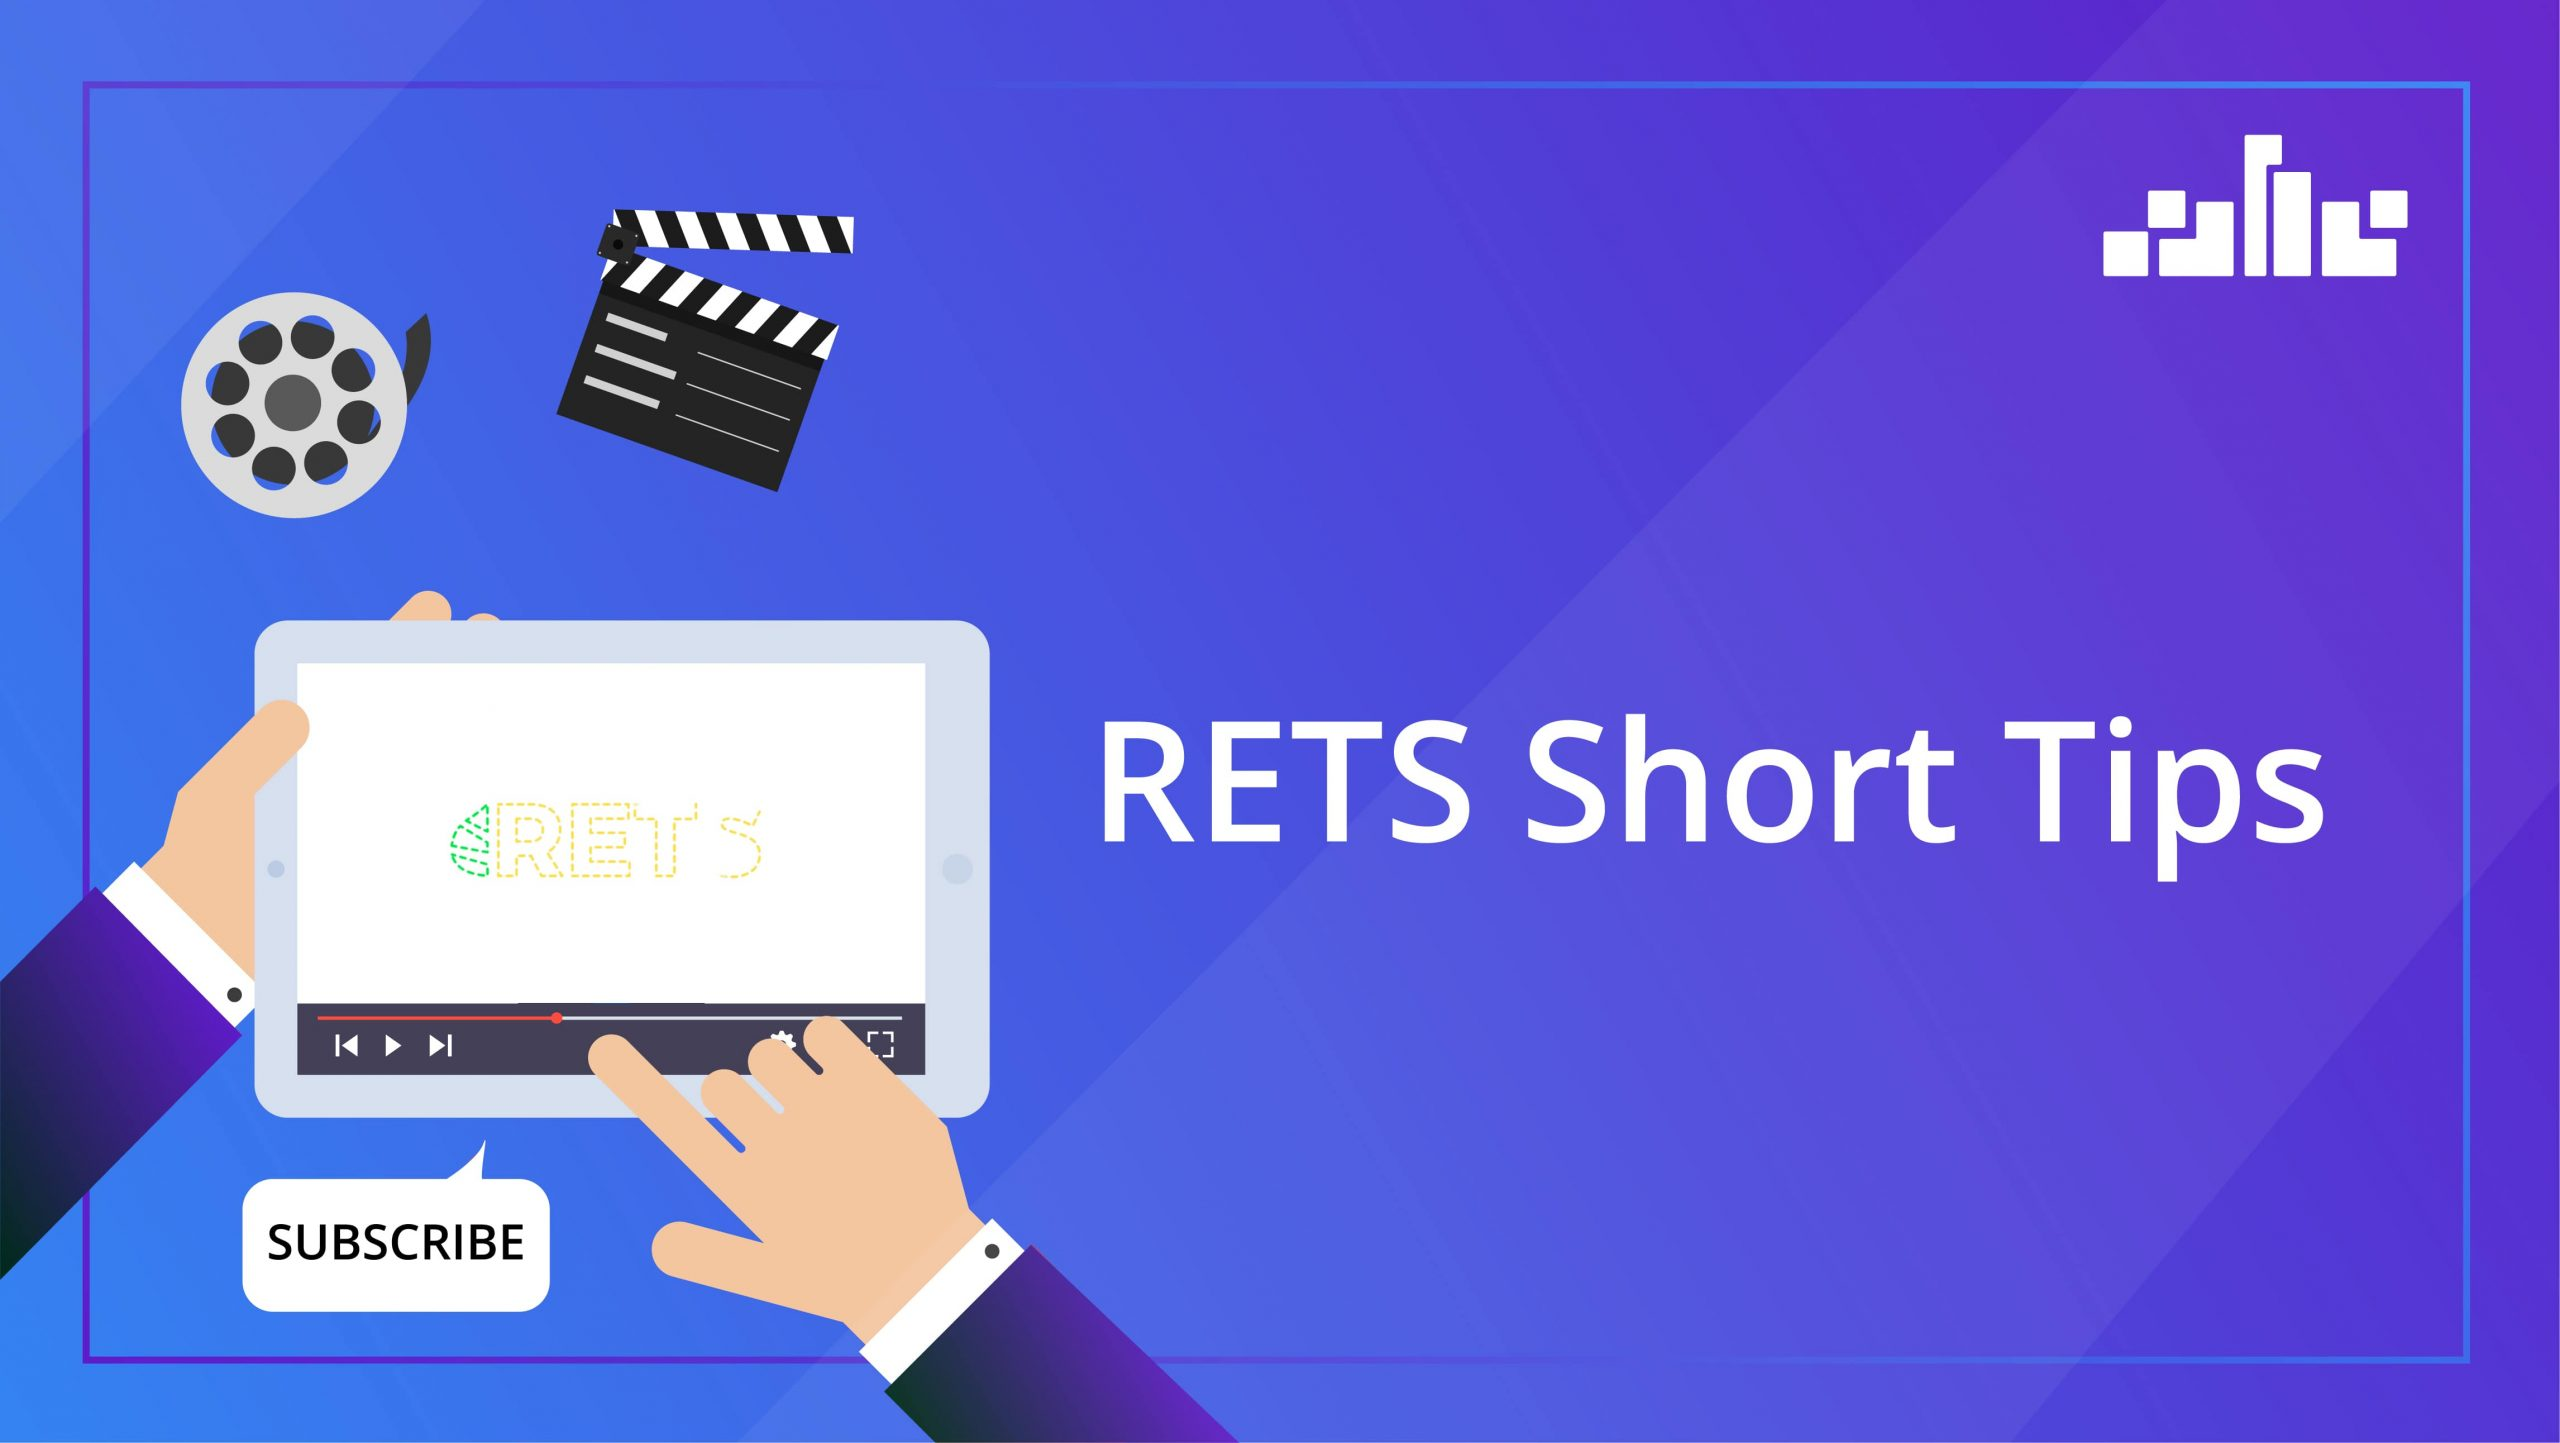 RETS short tips